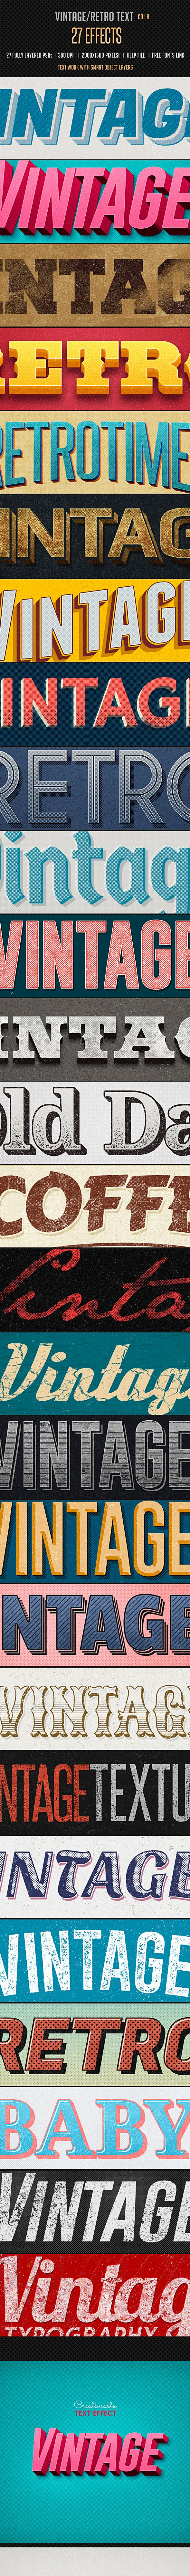 Vintage Retro Text Effects Col 8 - Text Effects Styles